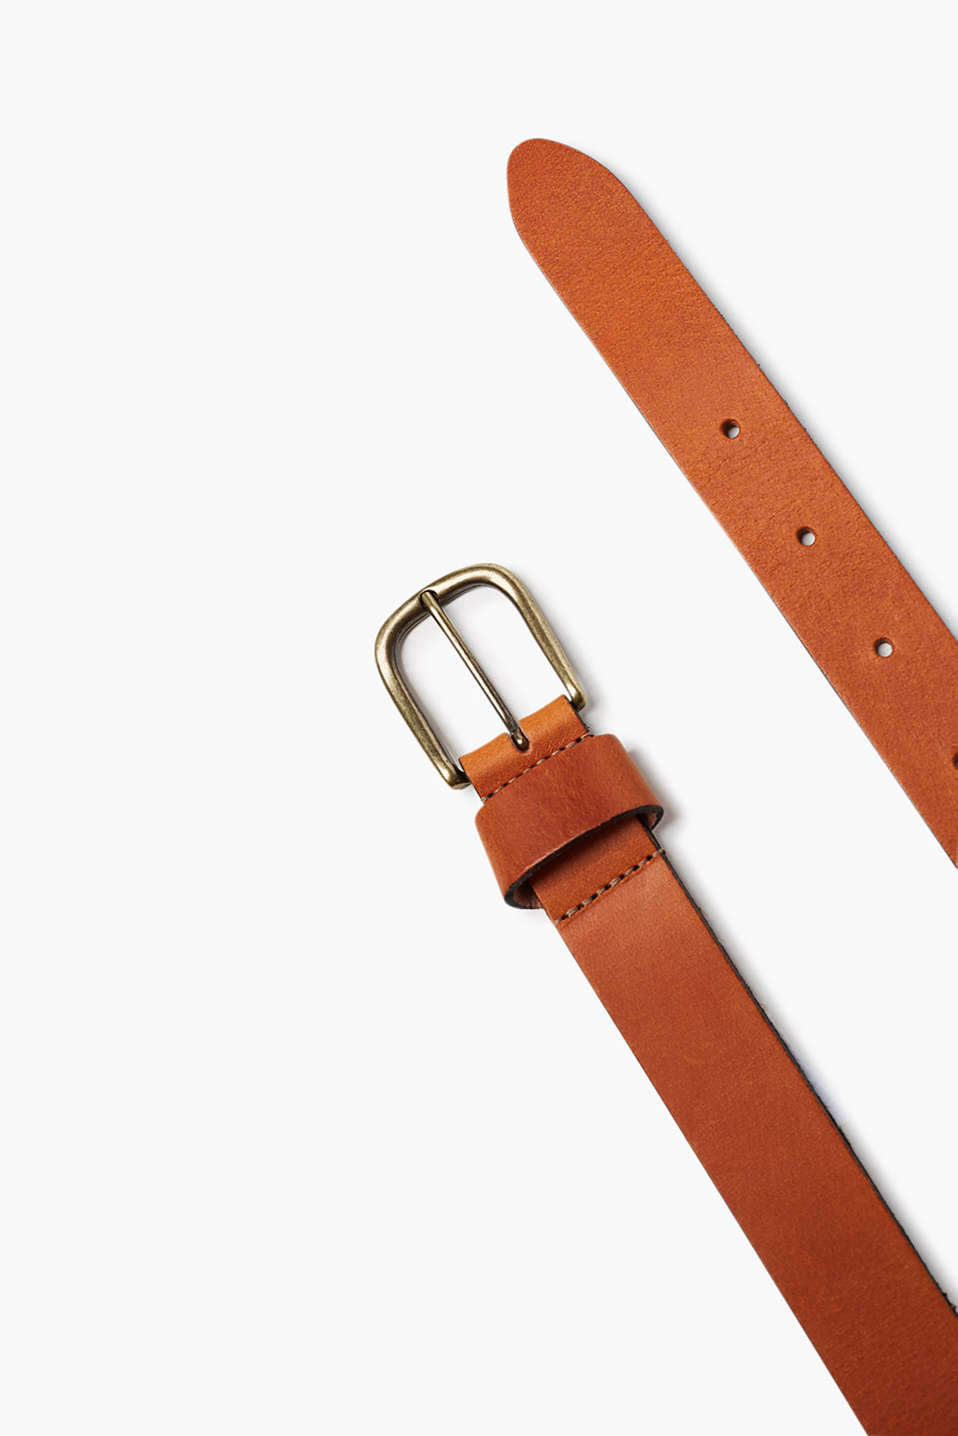 High-quality smooth leather belt with a rectangular metal buckle